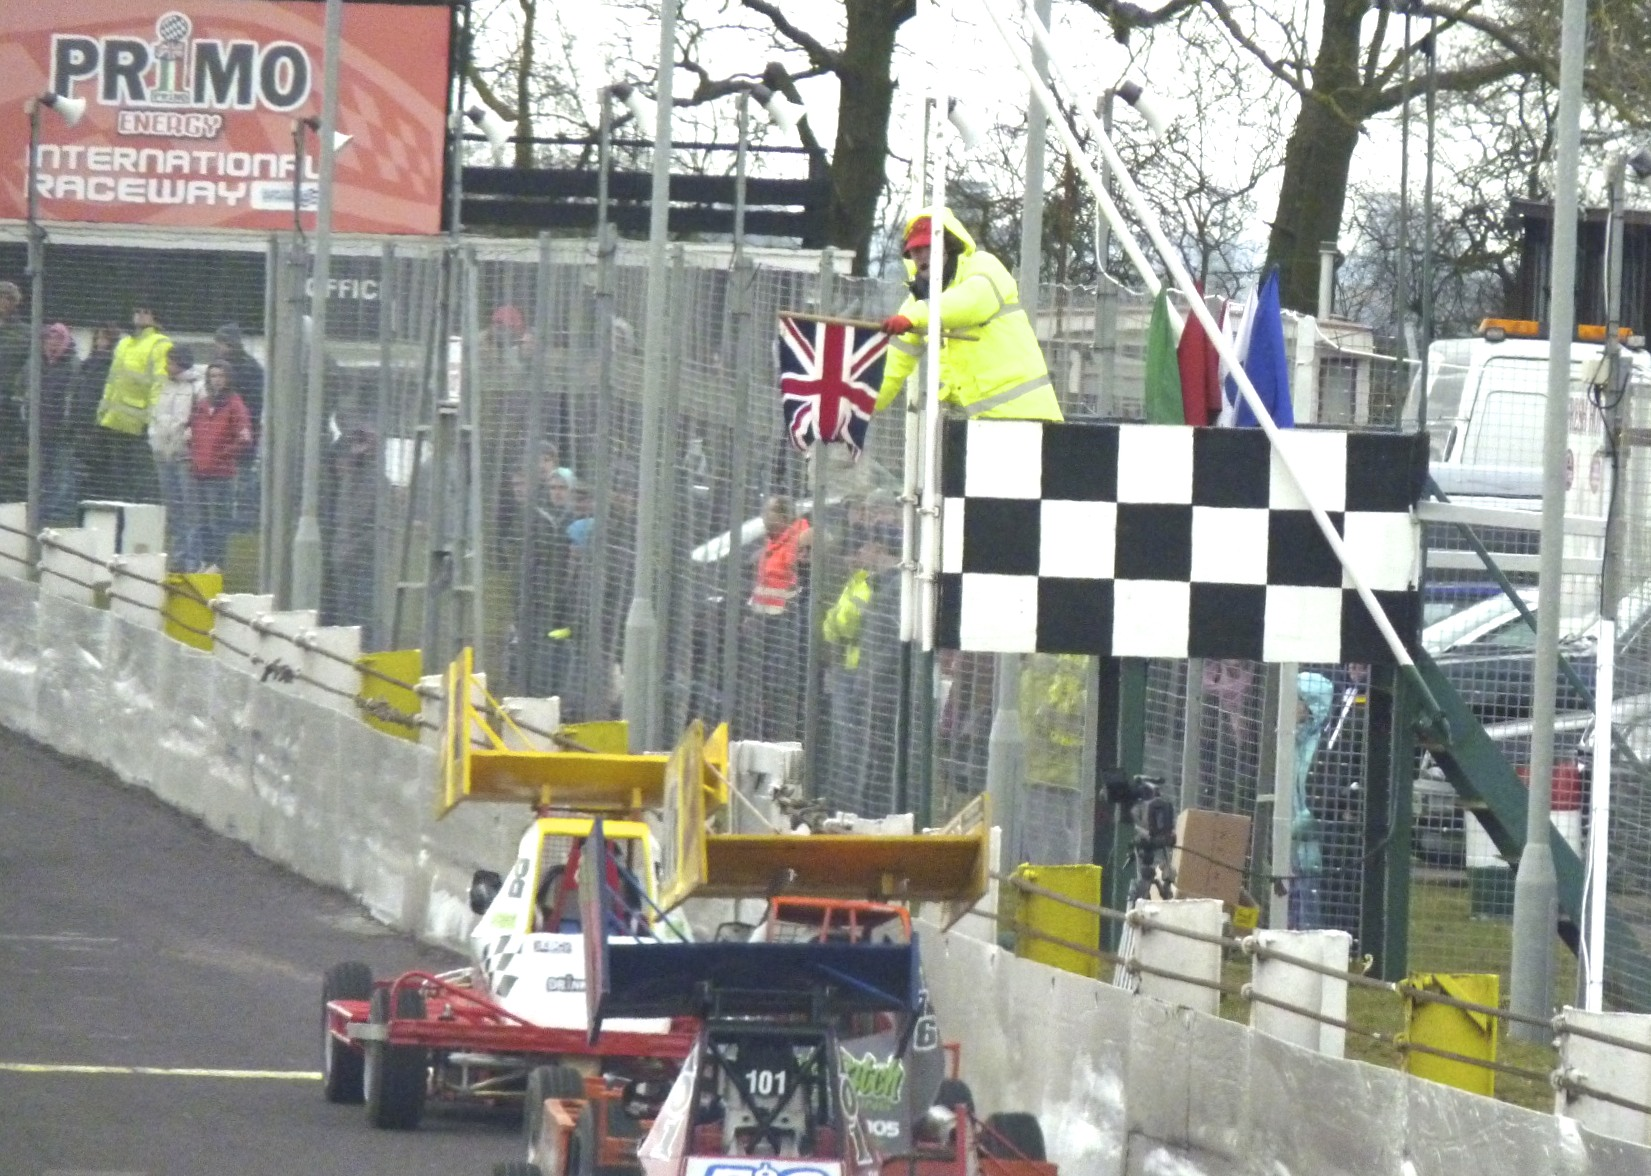 It's mid-race with the Union Jack flag.